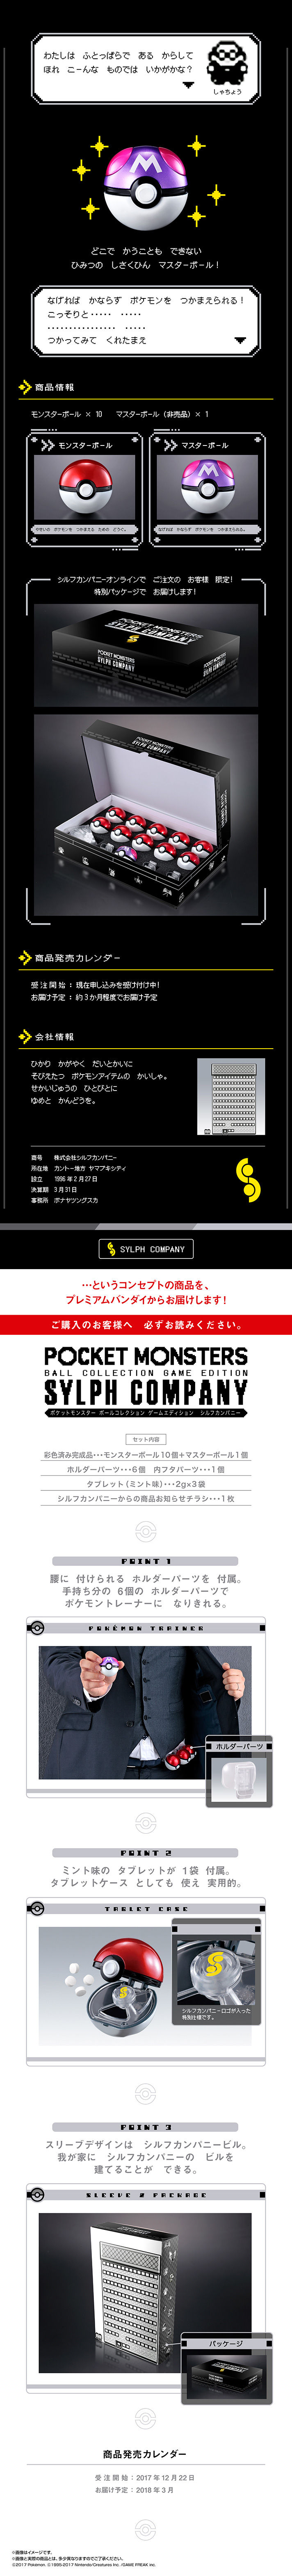 POCKET MOSTERS BALL COLLECTION(ポケットモンスターボールコレクション) GAME EDITION SILPH COMPANY